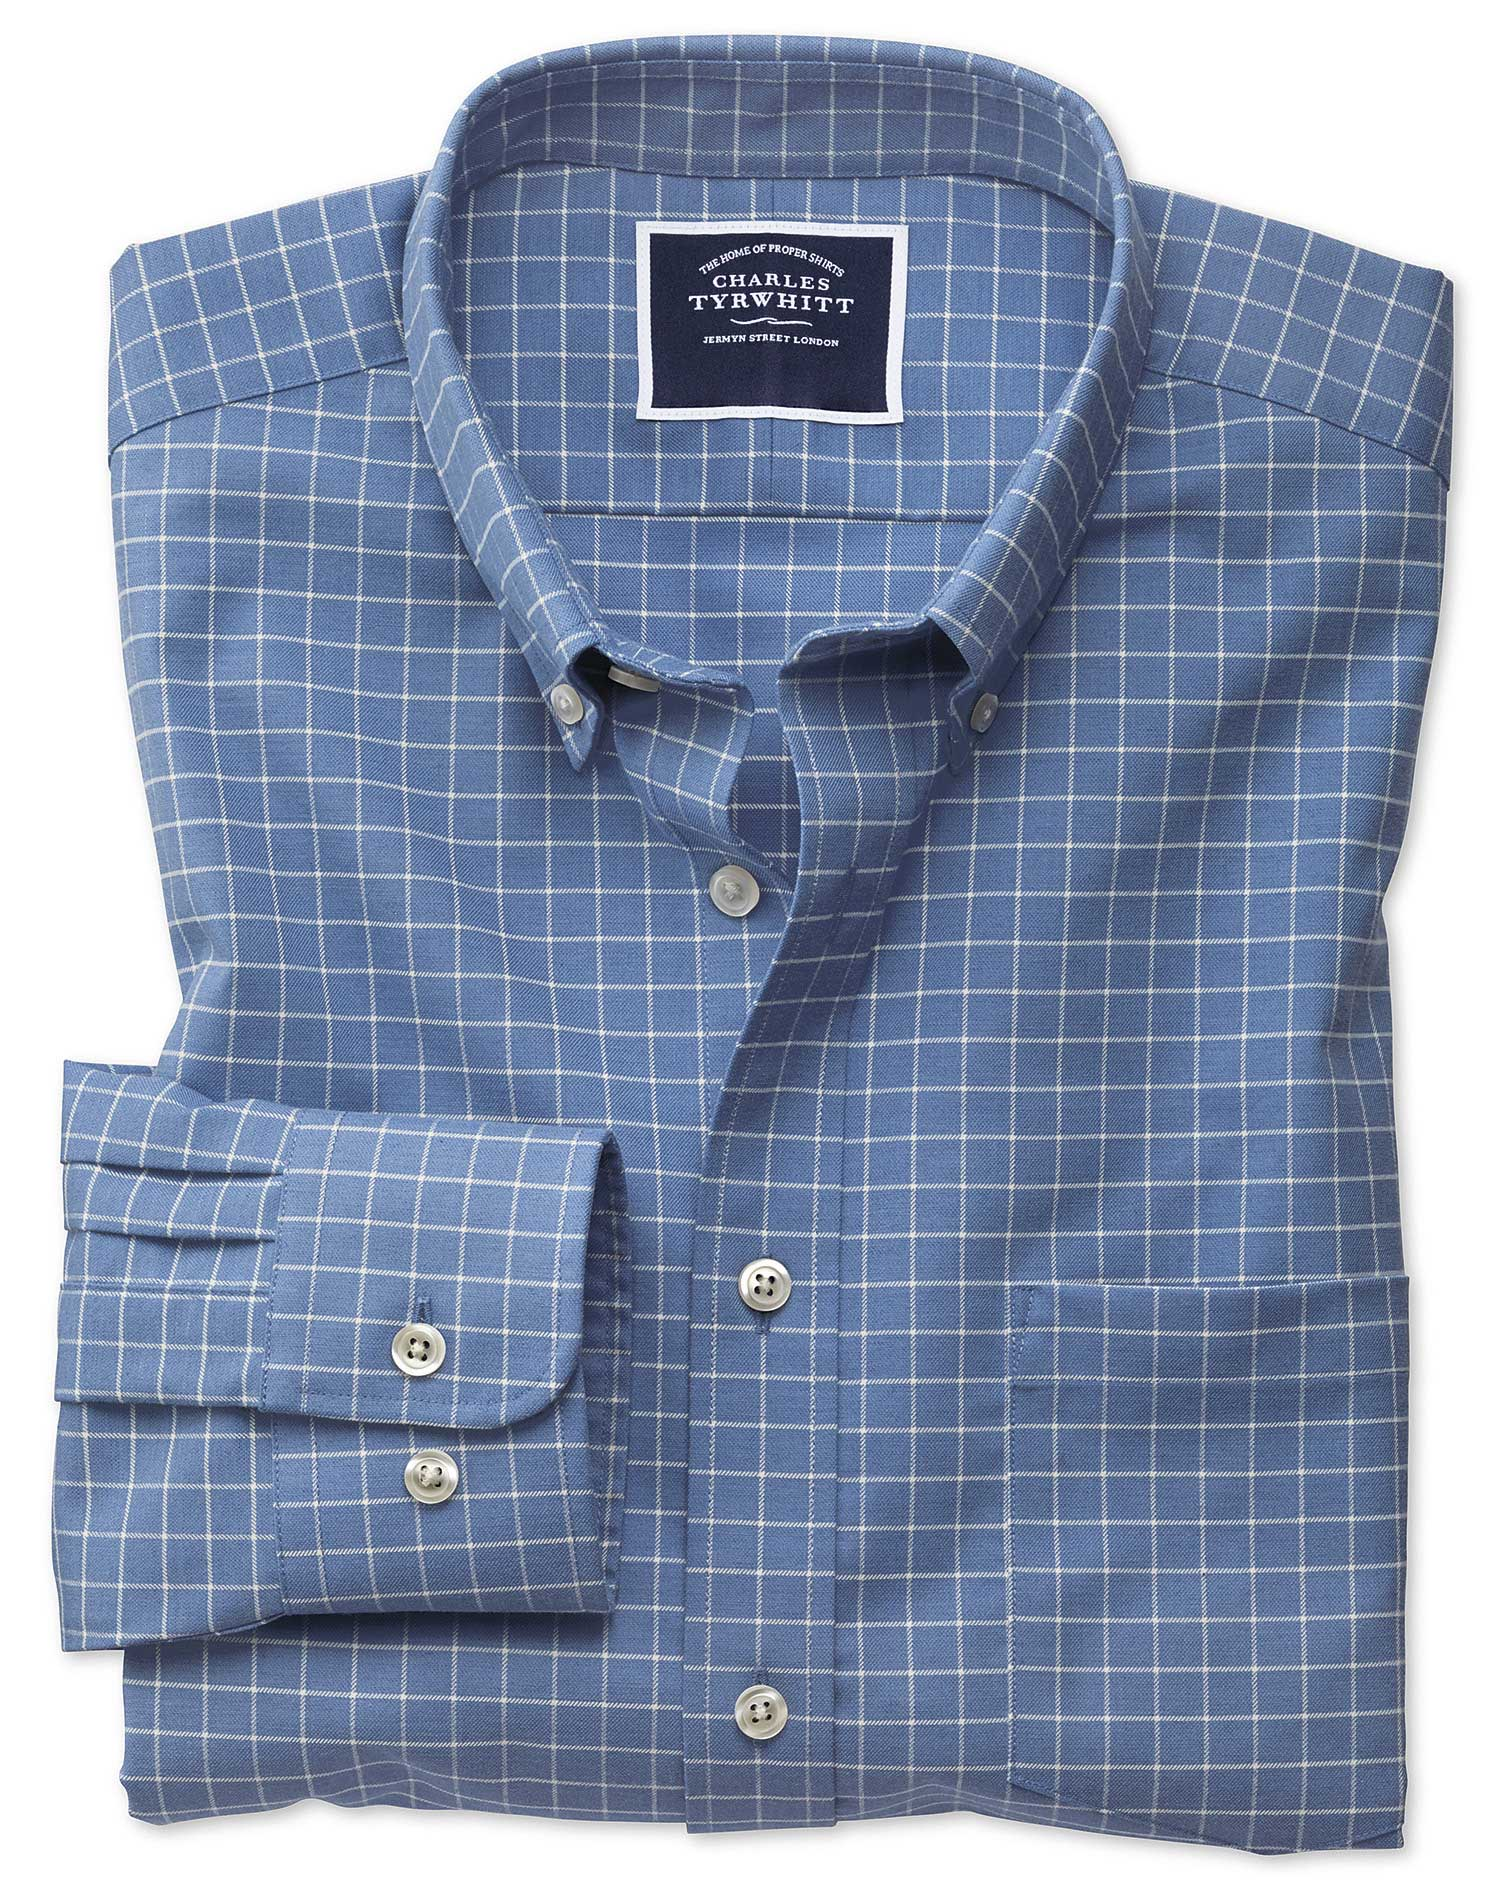 Classic Fit Non-Iron Sky Blue Grid Check Twill Cotton Shirt Single Cuff Size XXXL by Charles Tyrwhit